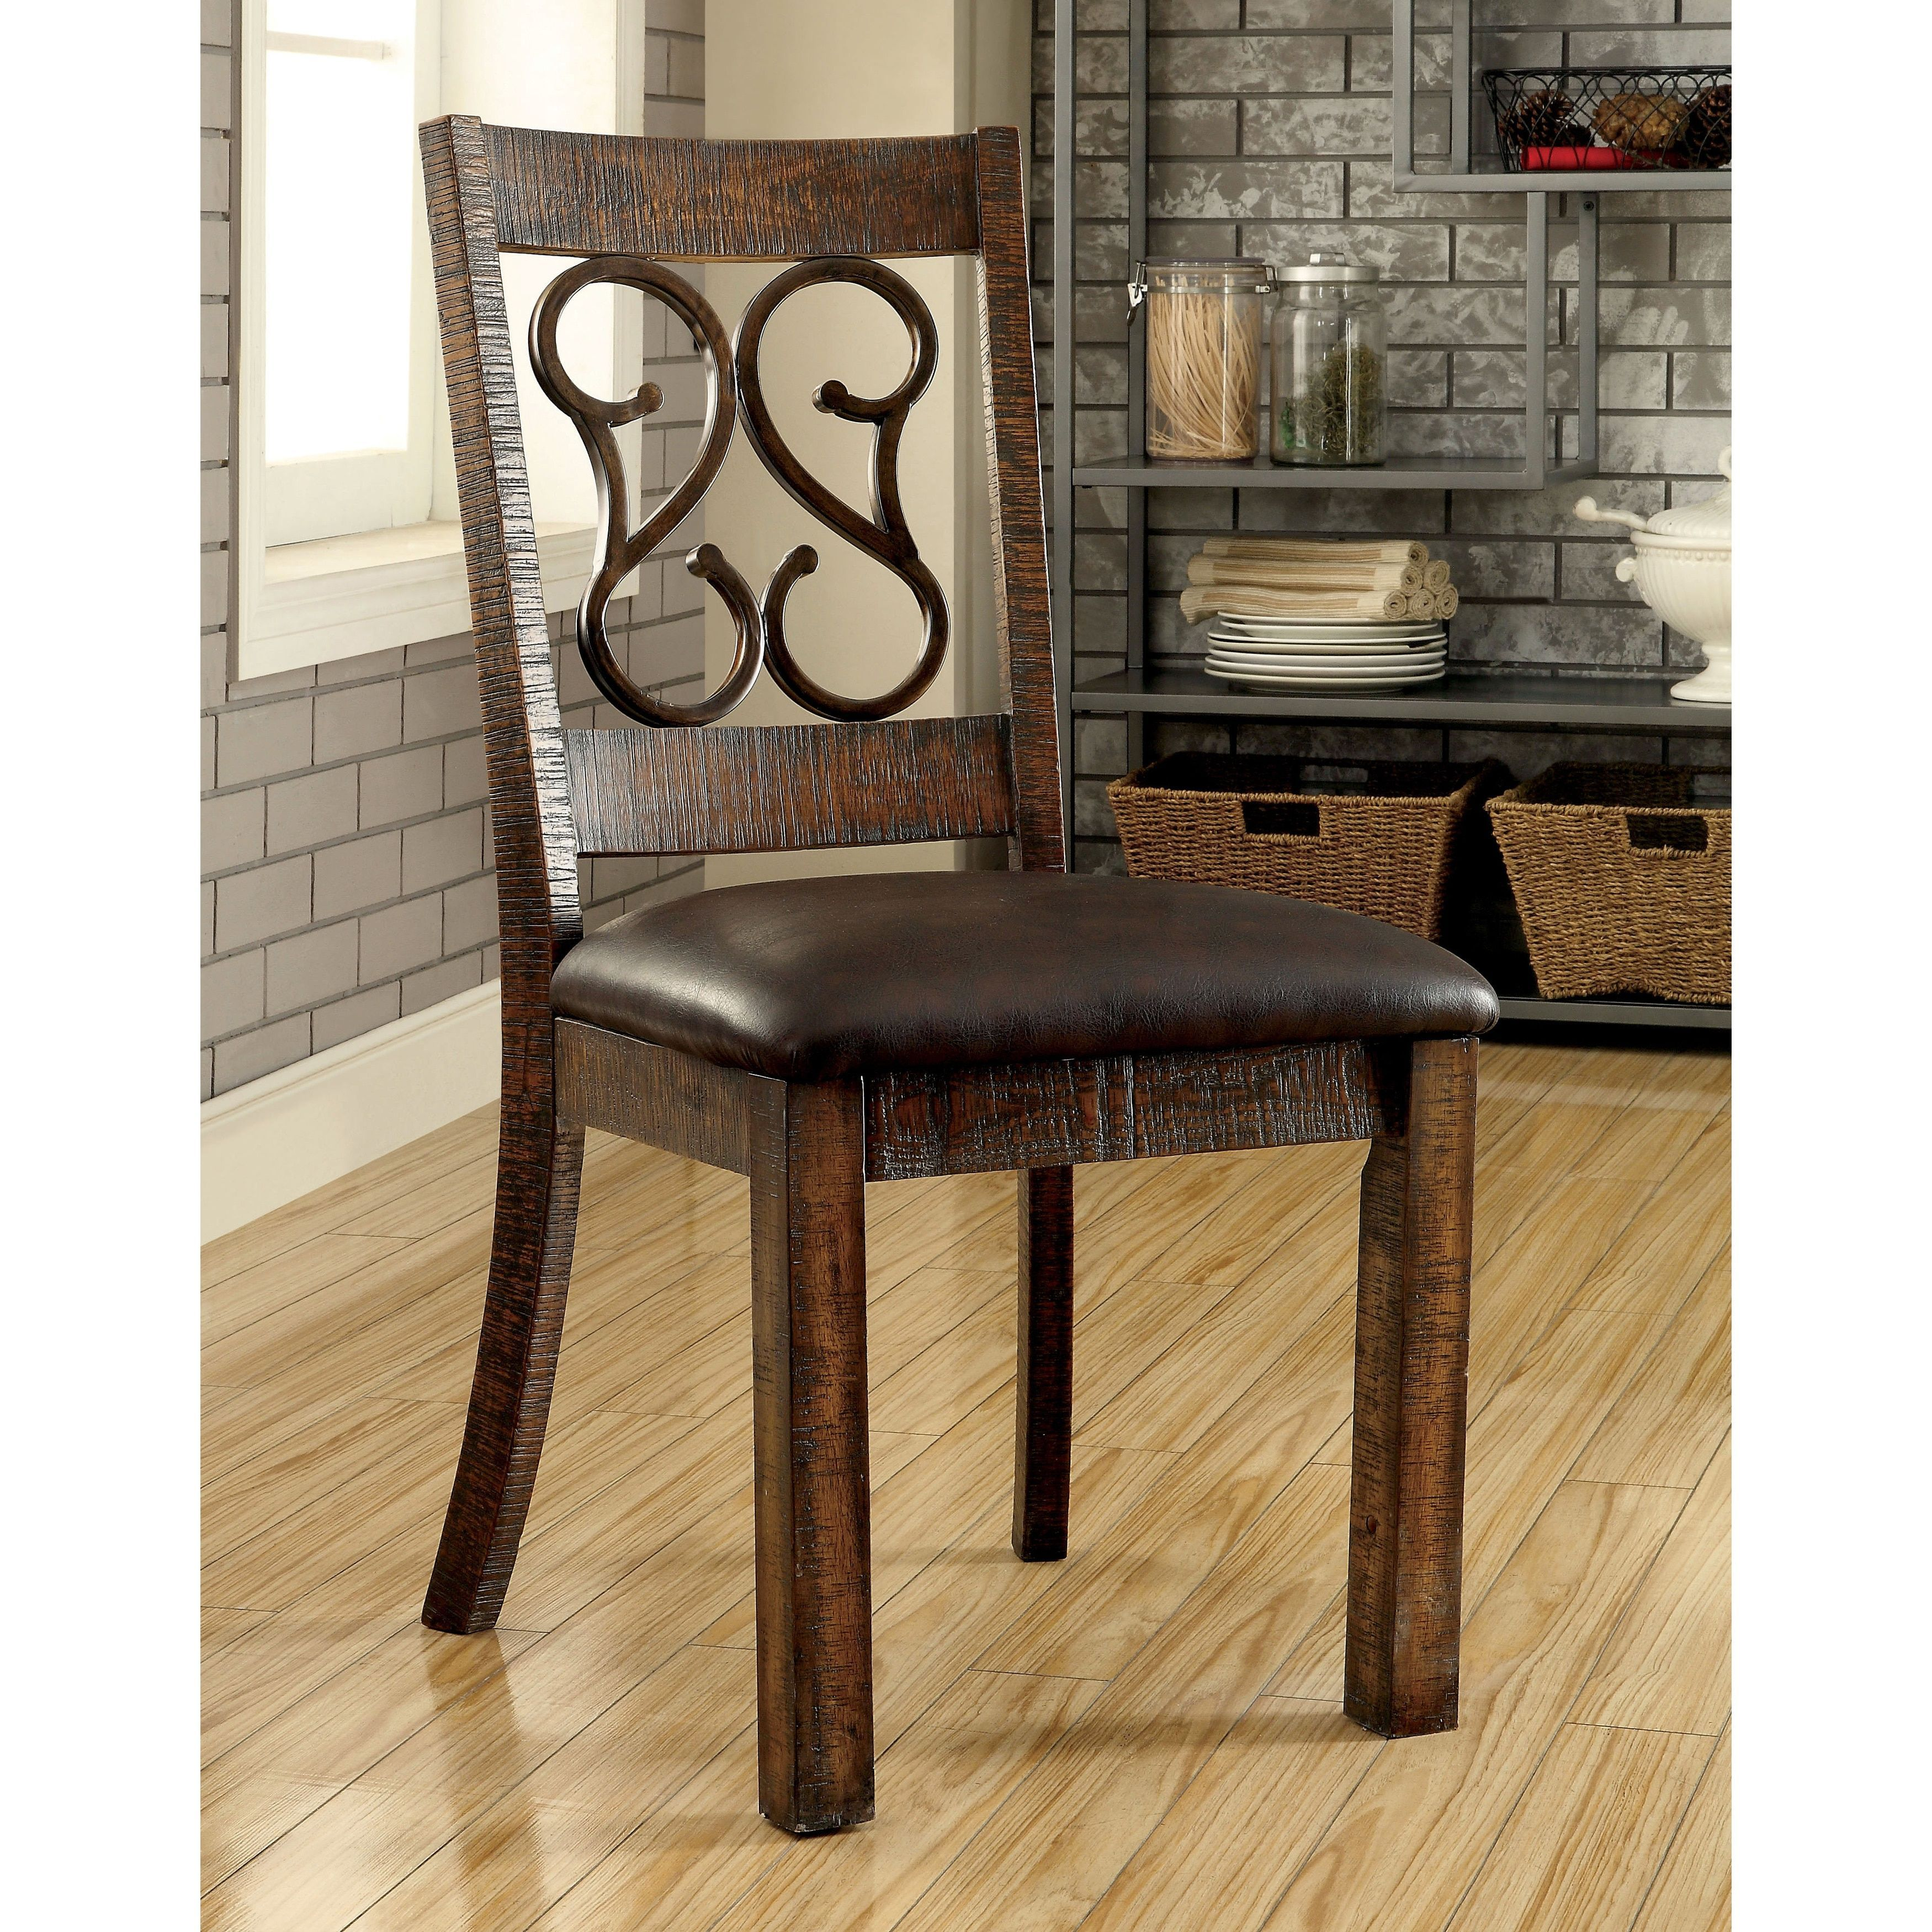 furniture of america chester traditional scrolled metal leatherette rh pinterest com